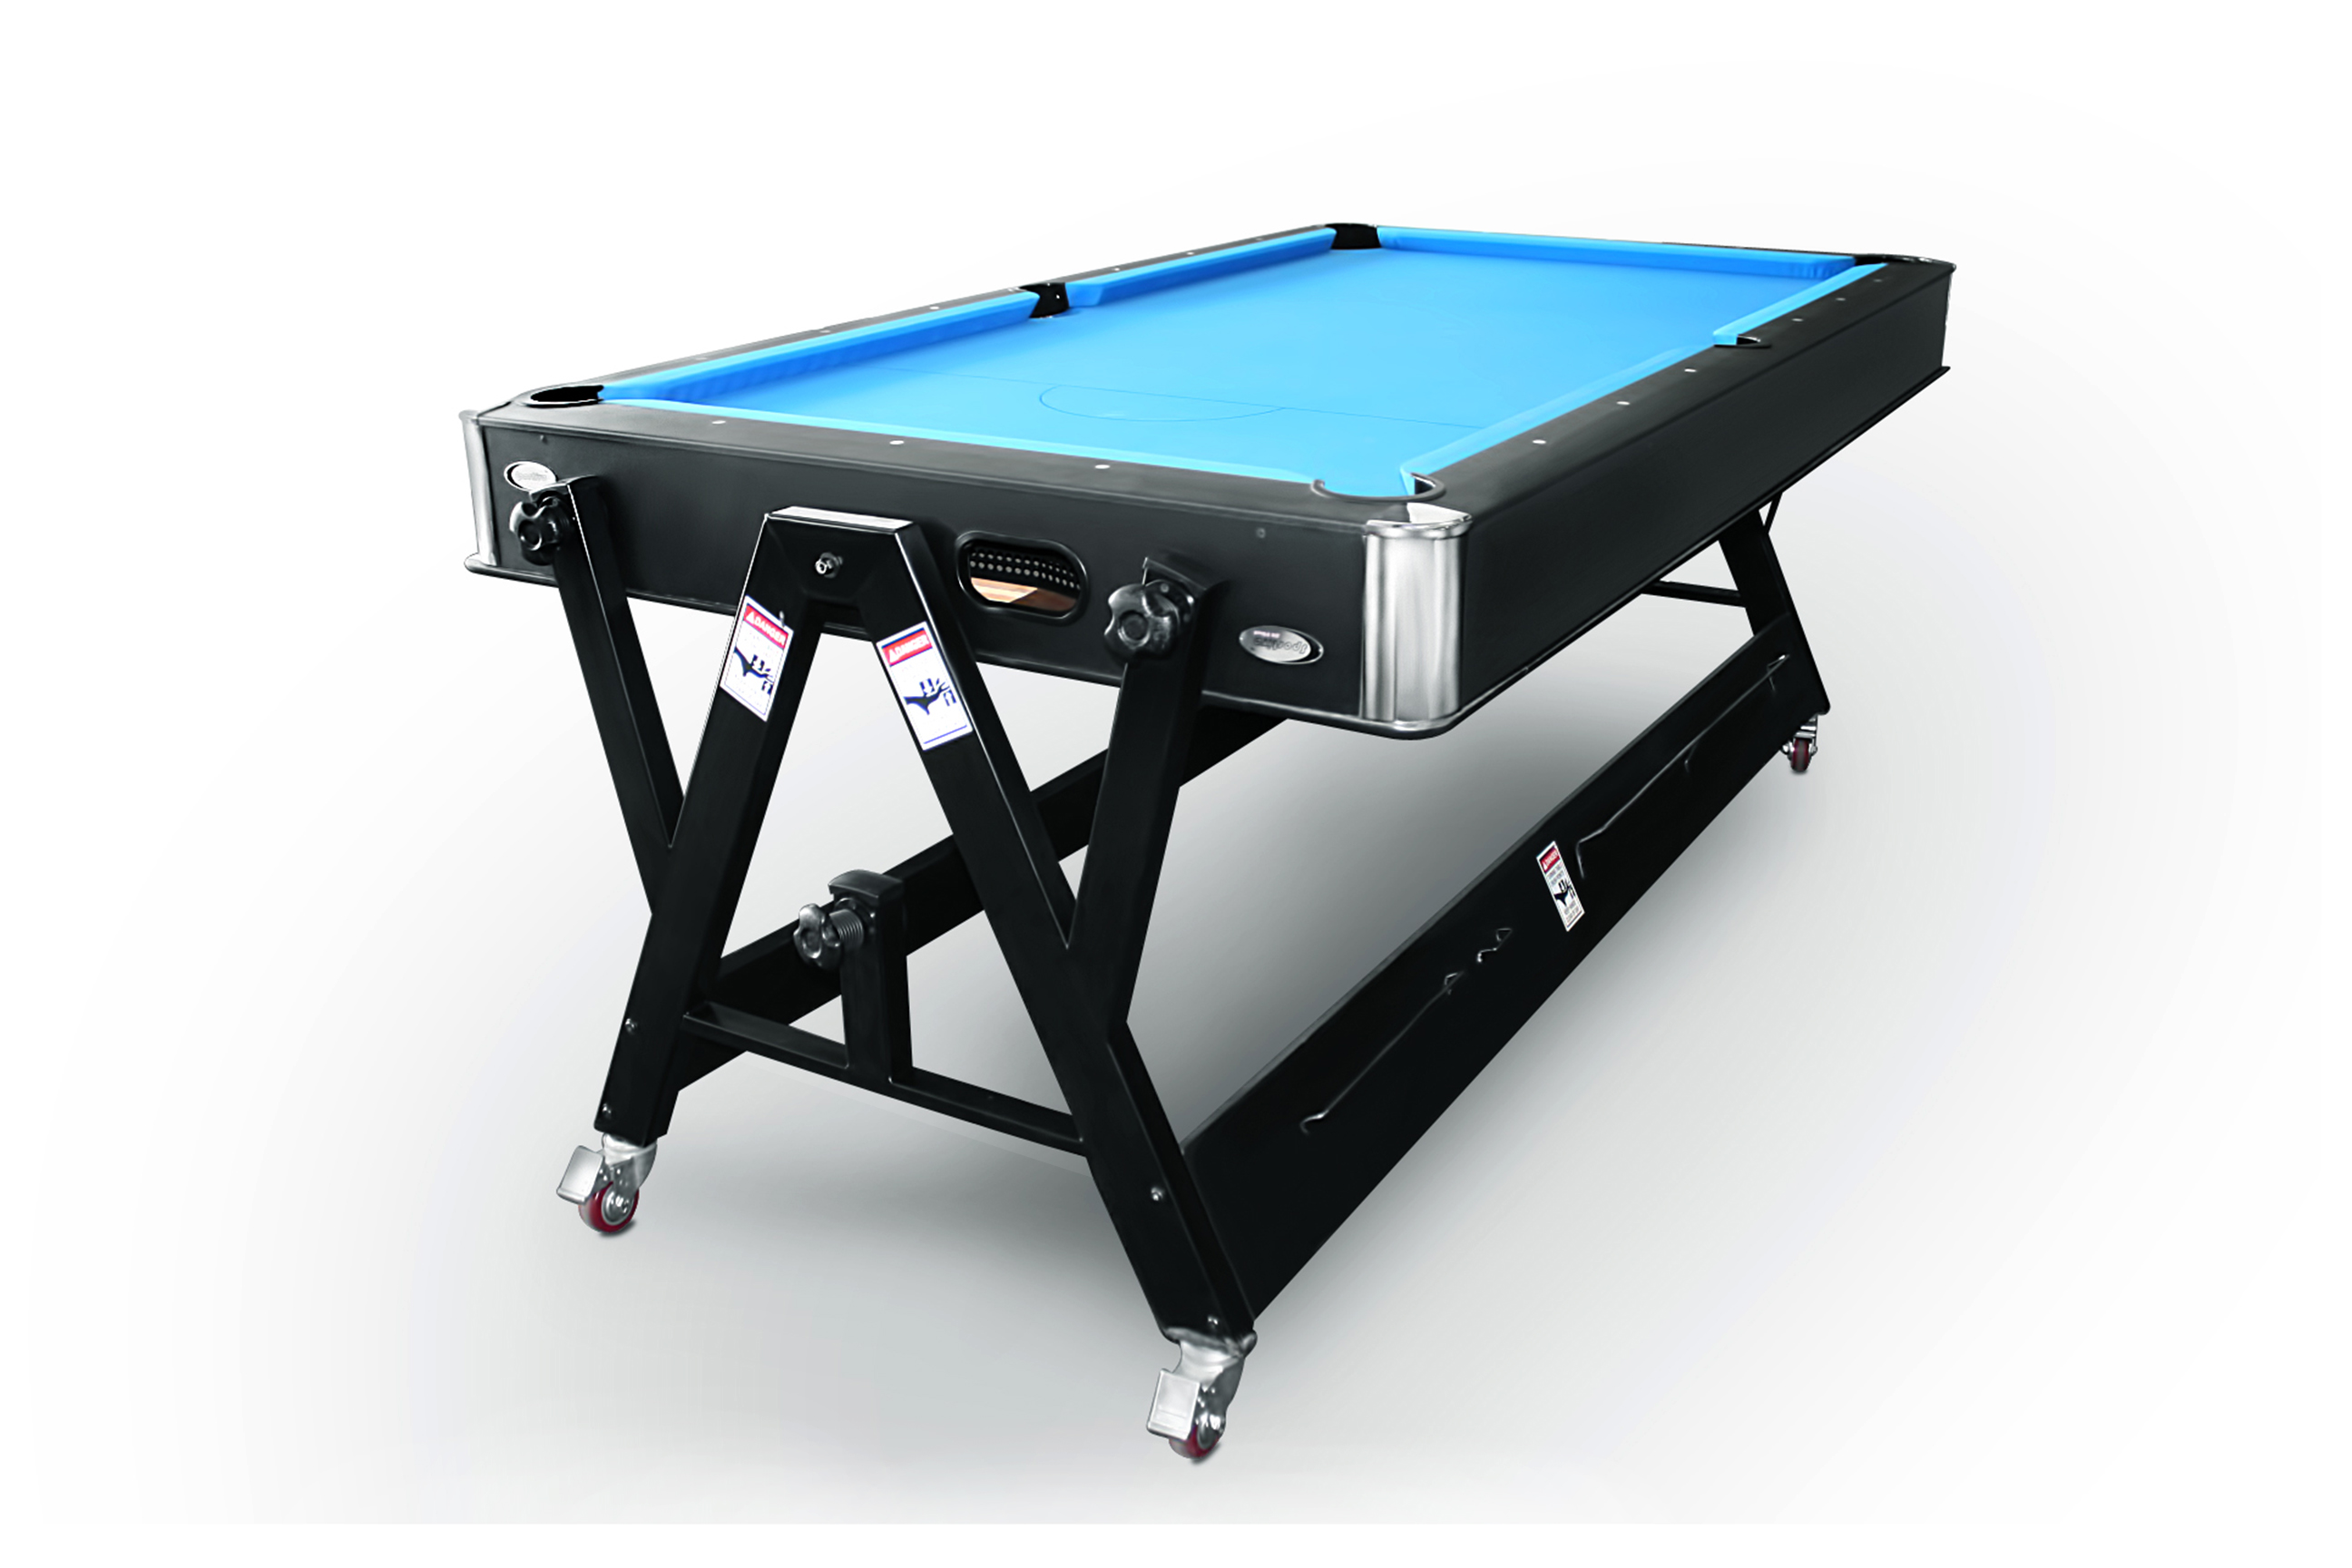 games sport tables hi now that you have taken your life back by multi function tables